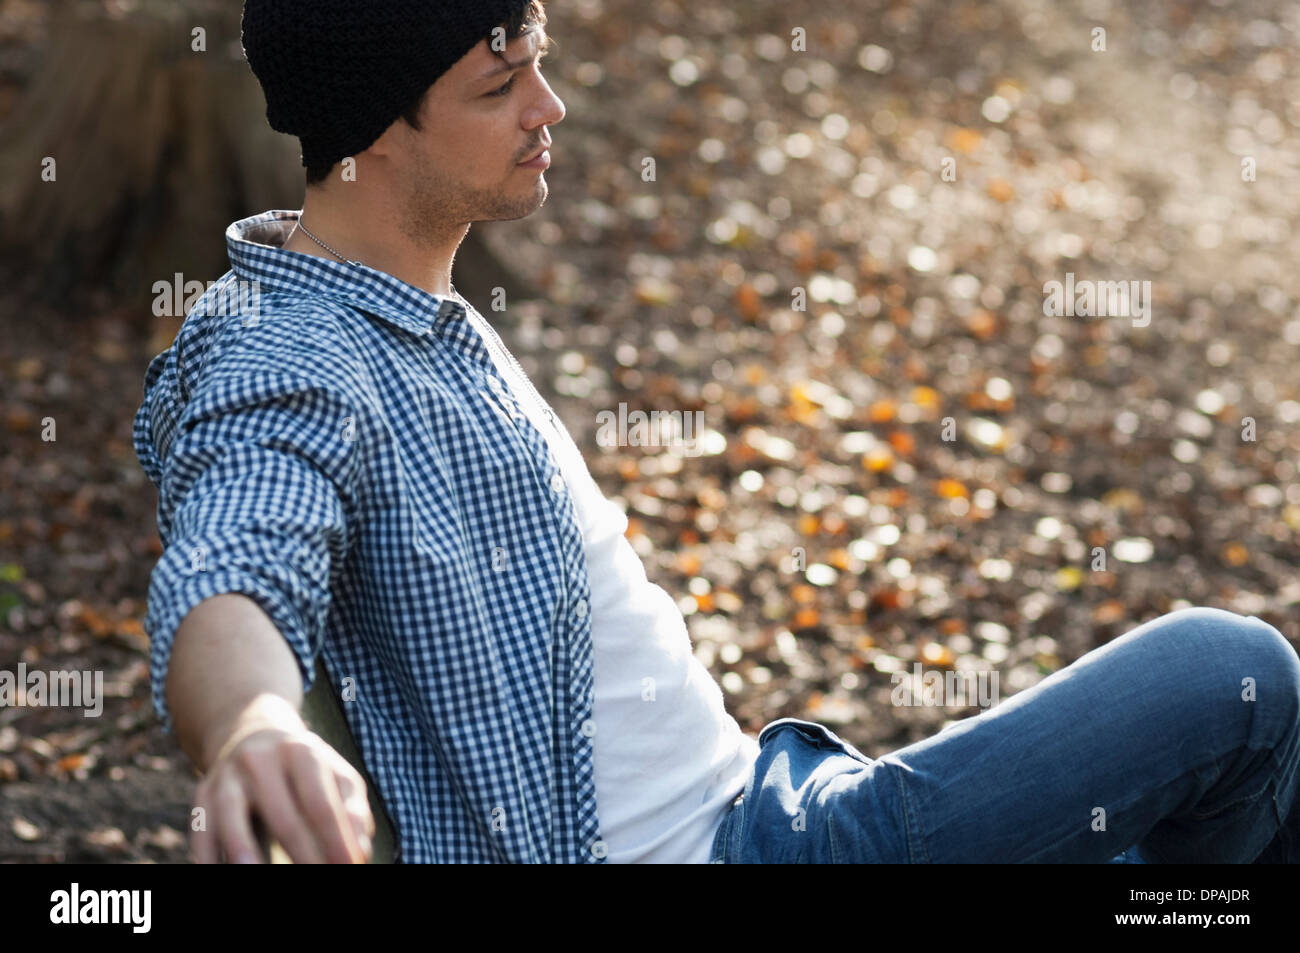 Portrait of man sitting on bench in autumn - Stock Image